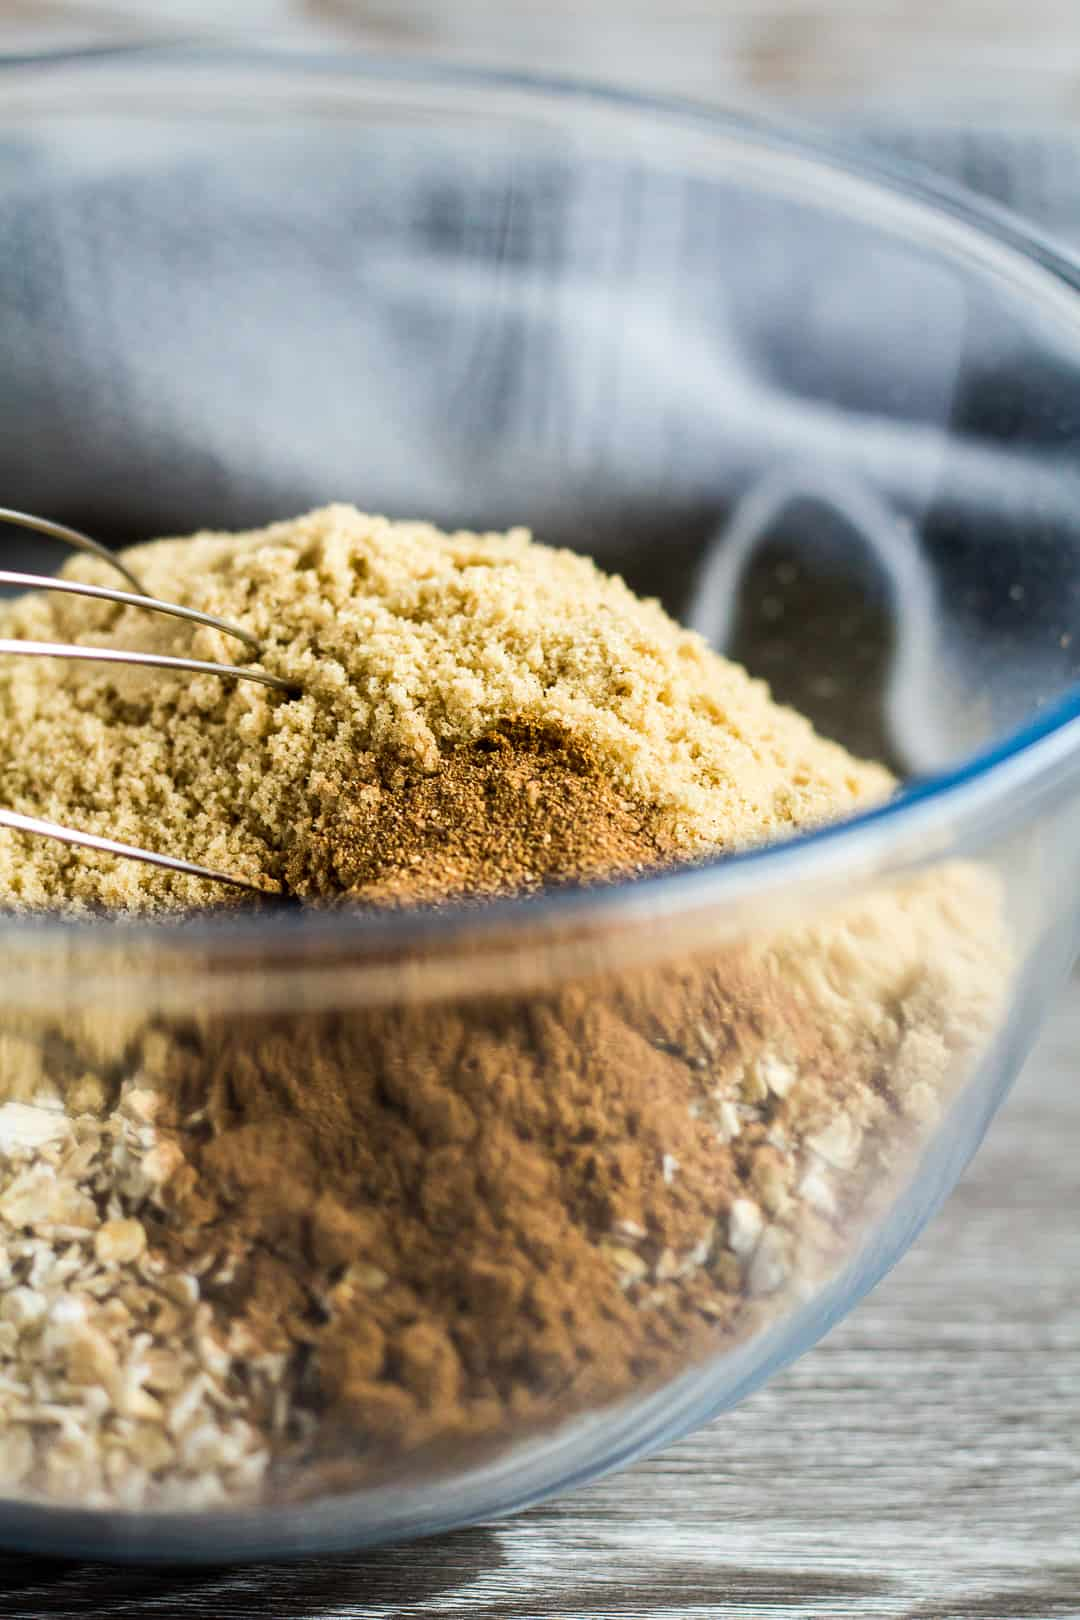 Oats, brown sugar, and spices in a glass mixing bowl for Hot Cross Bun Spiced Flapjacks.